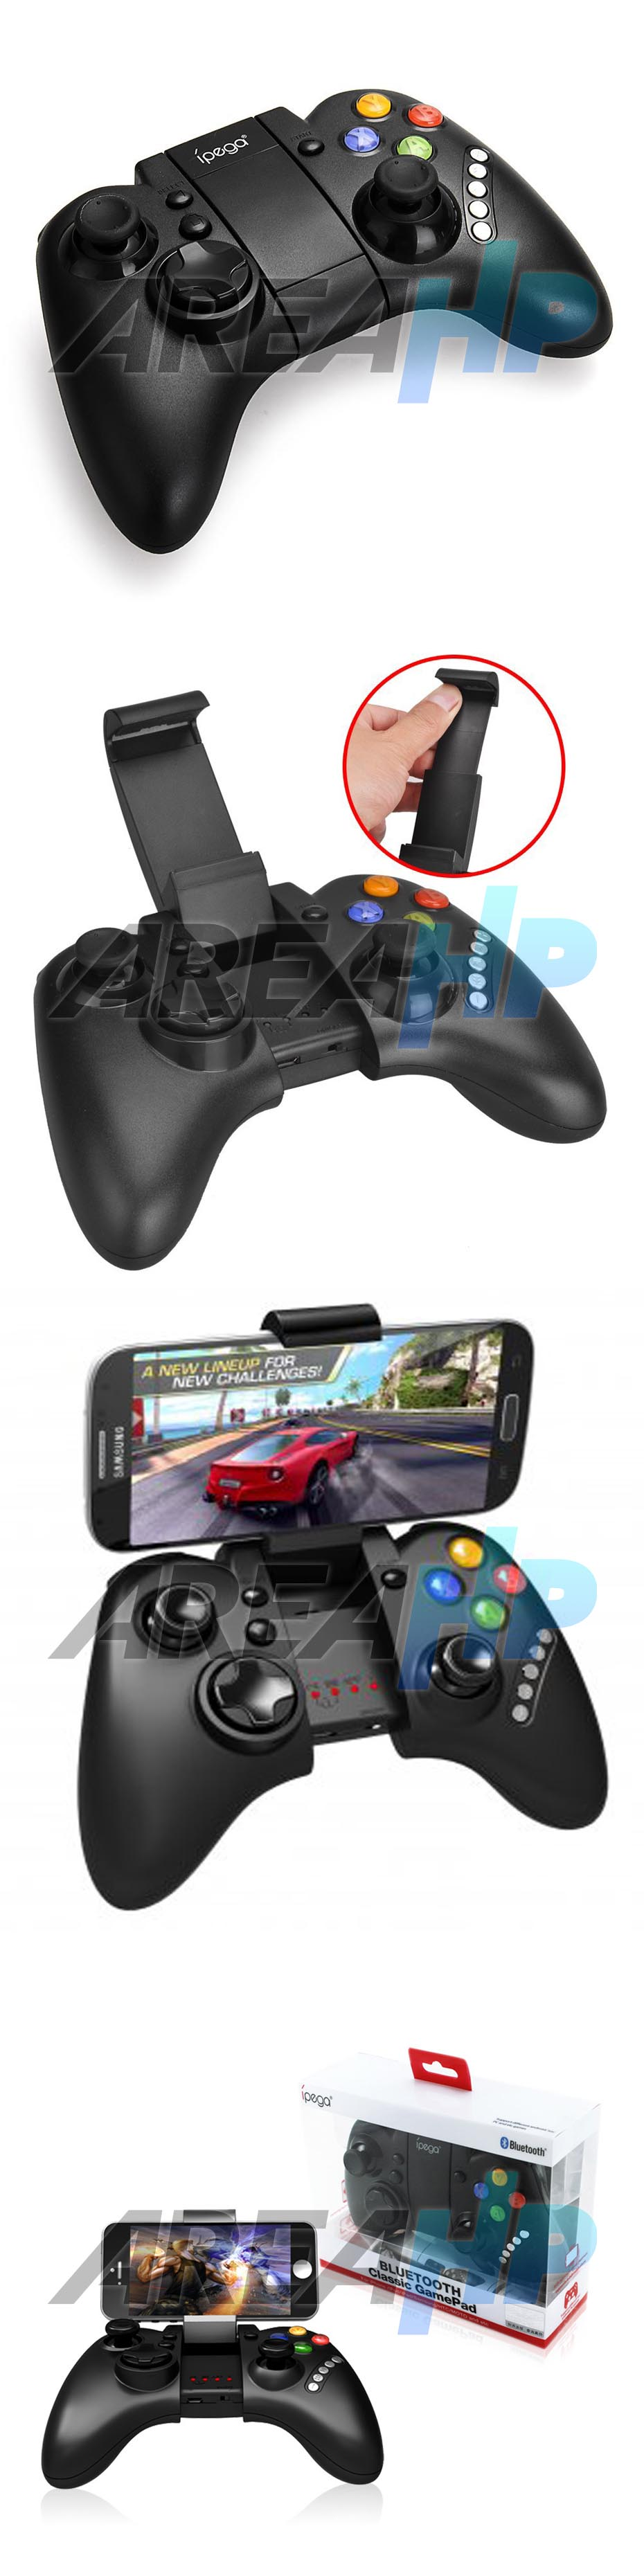 Ipega Gamepad PG-9021 Overview